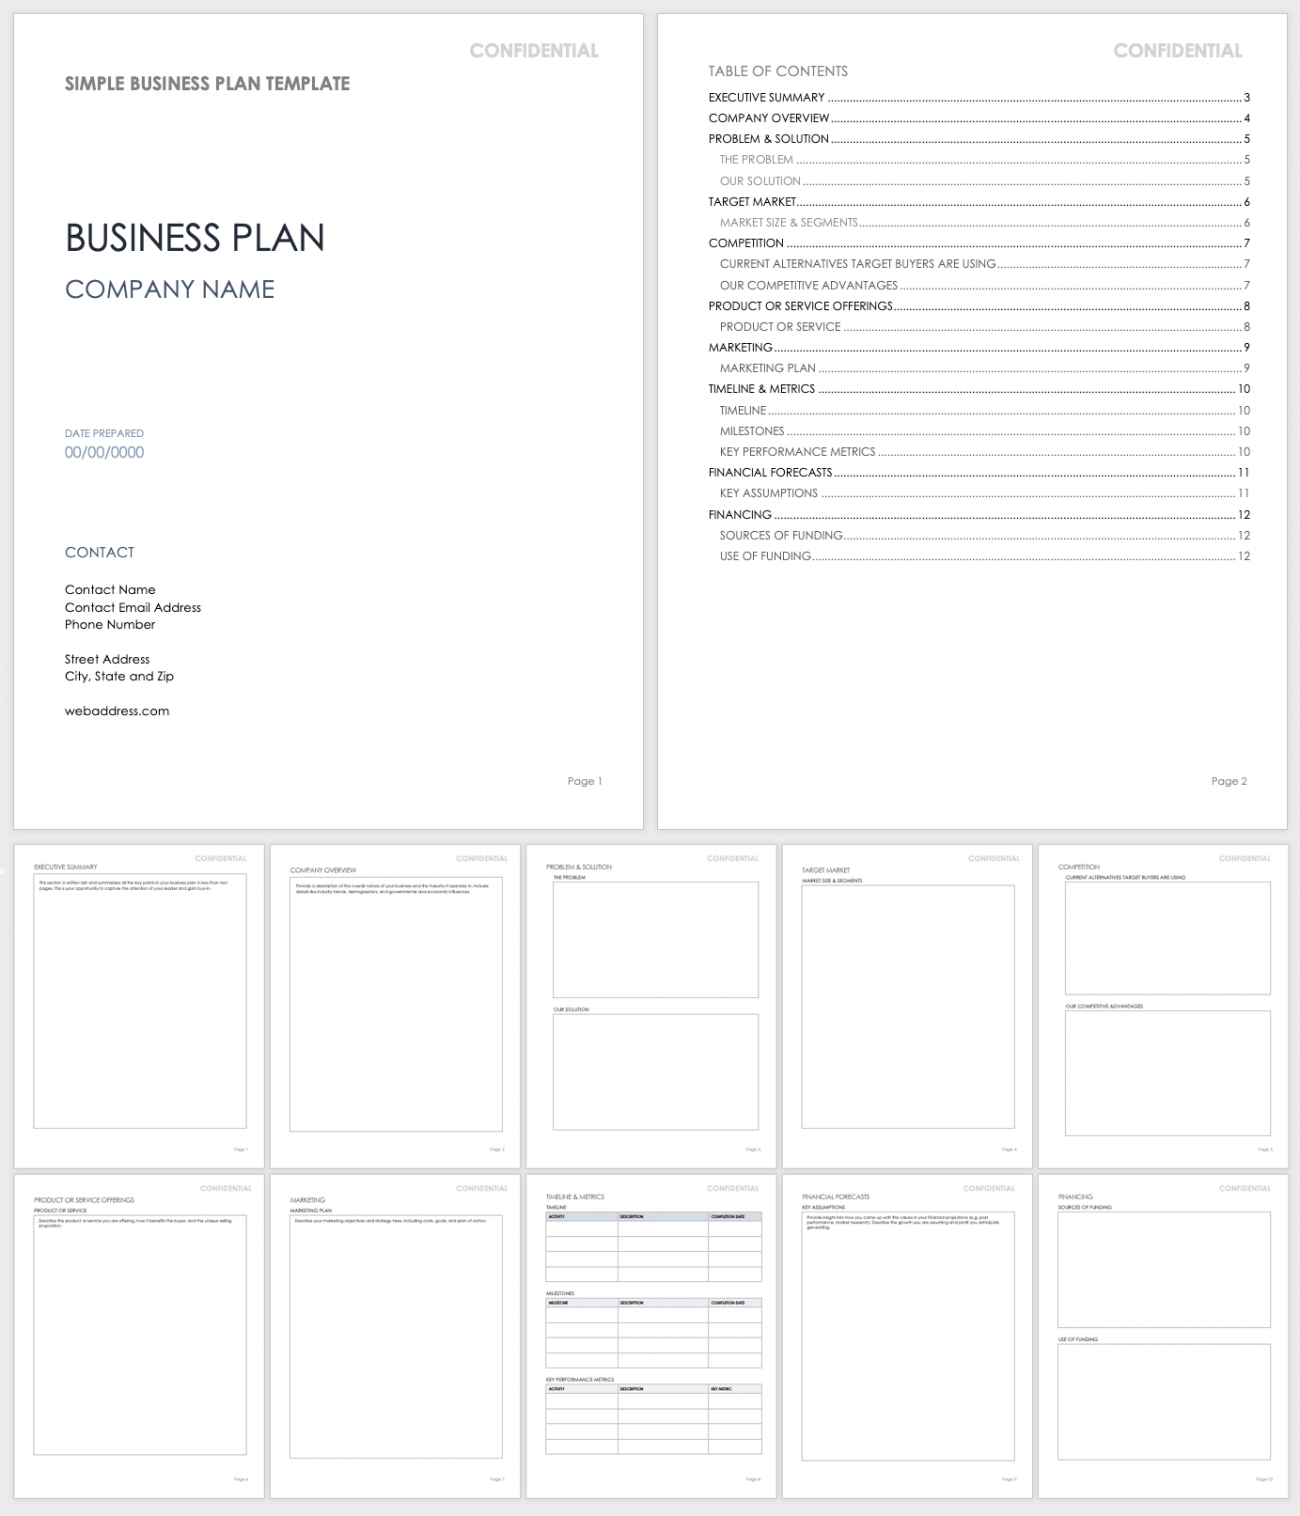 Free Simple Business Plan Templates   Smartsheet